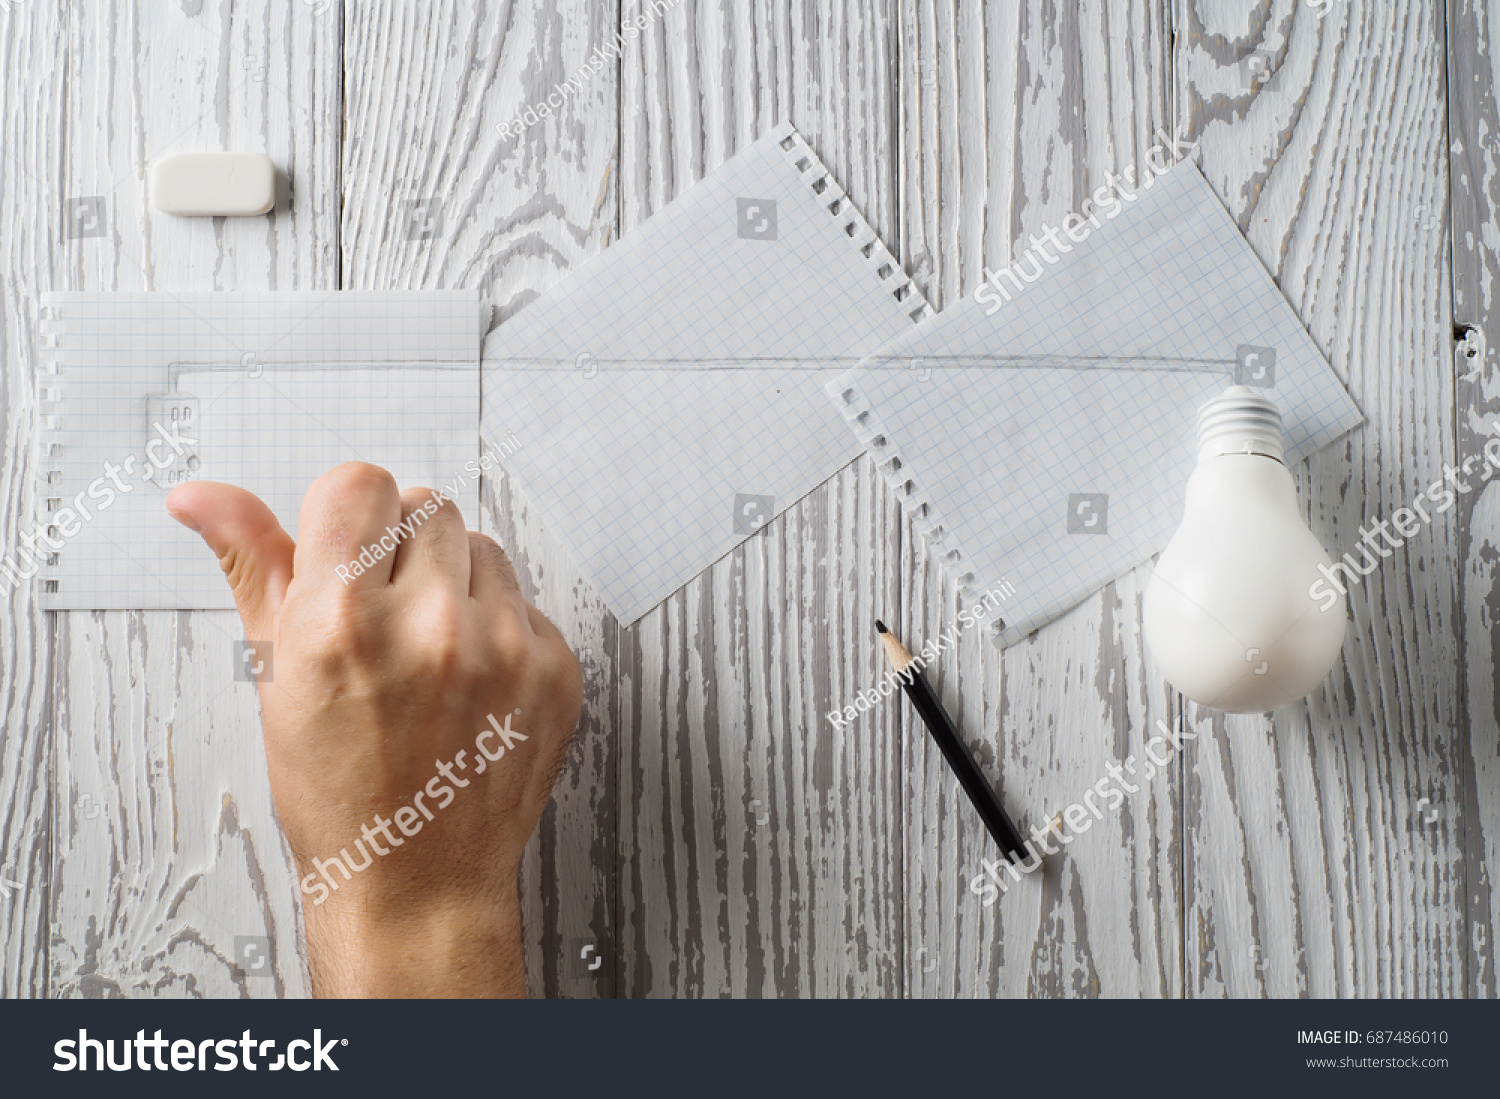 Pencil Sketch Electrical Circuit On Paper Stock Photo 687486010 ...